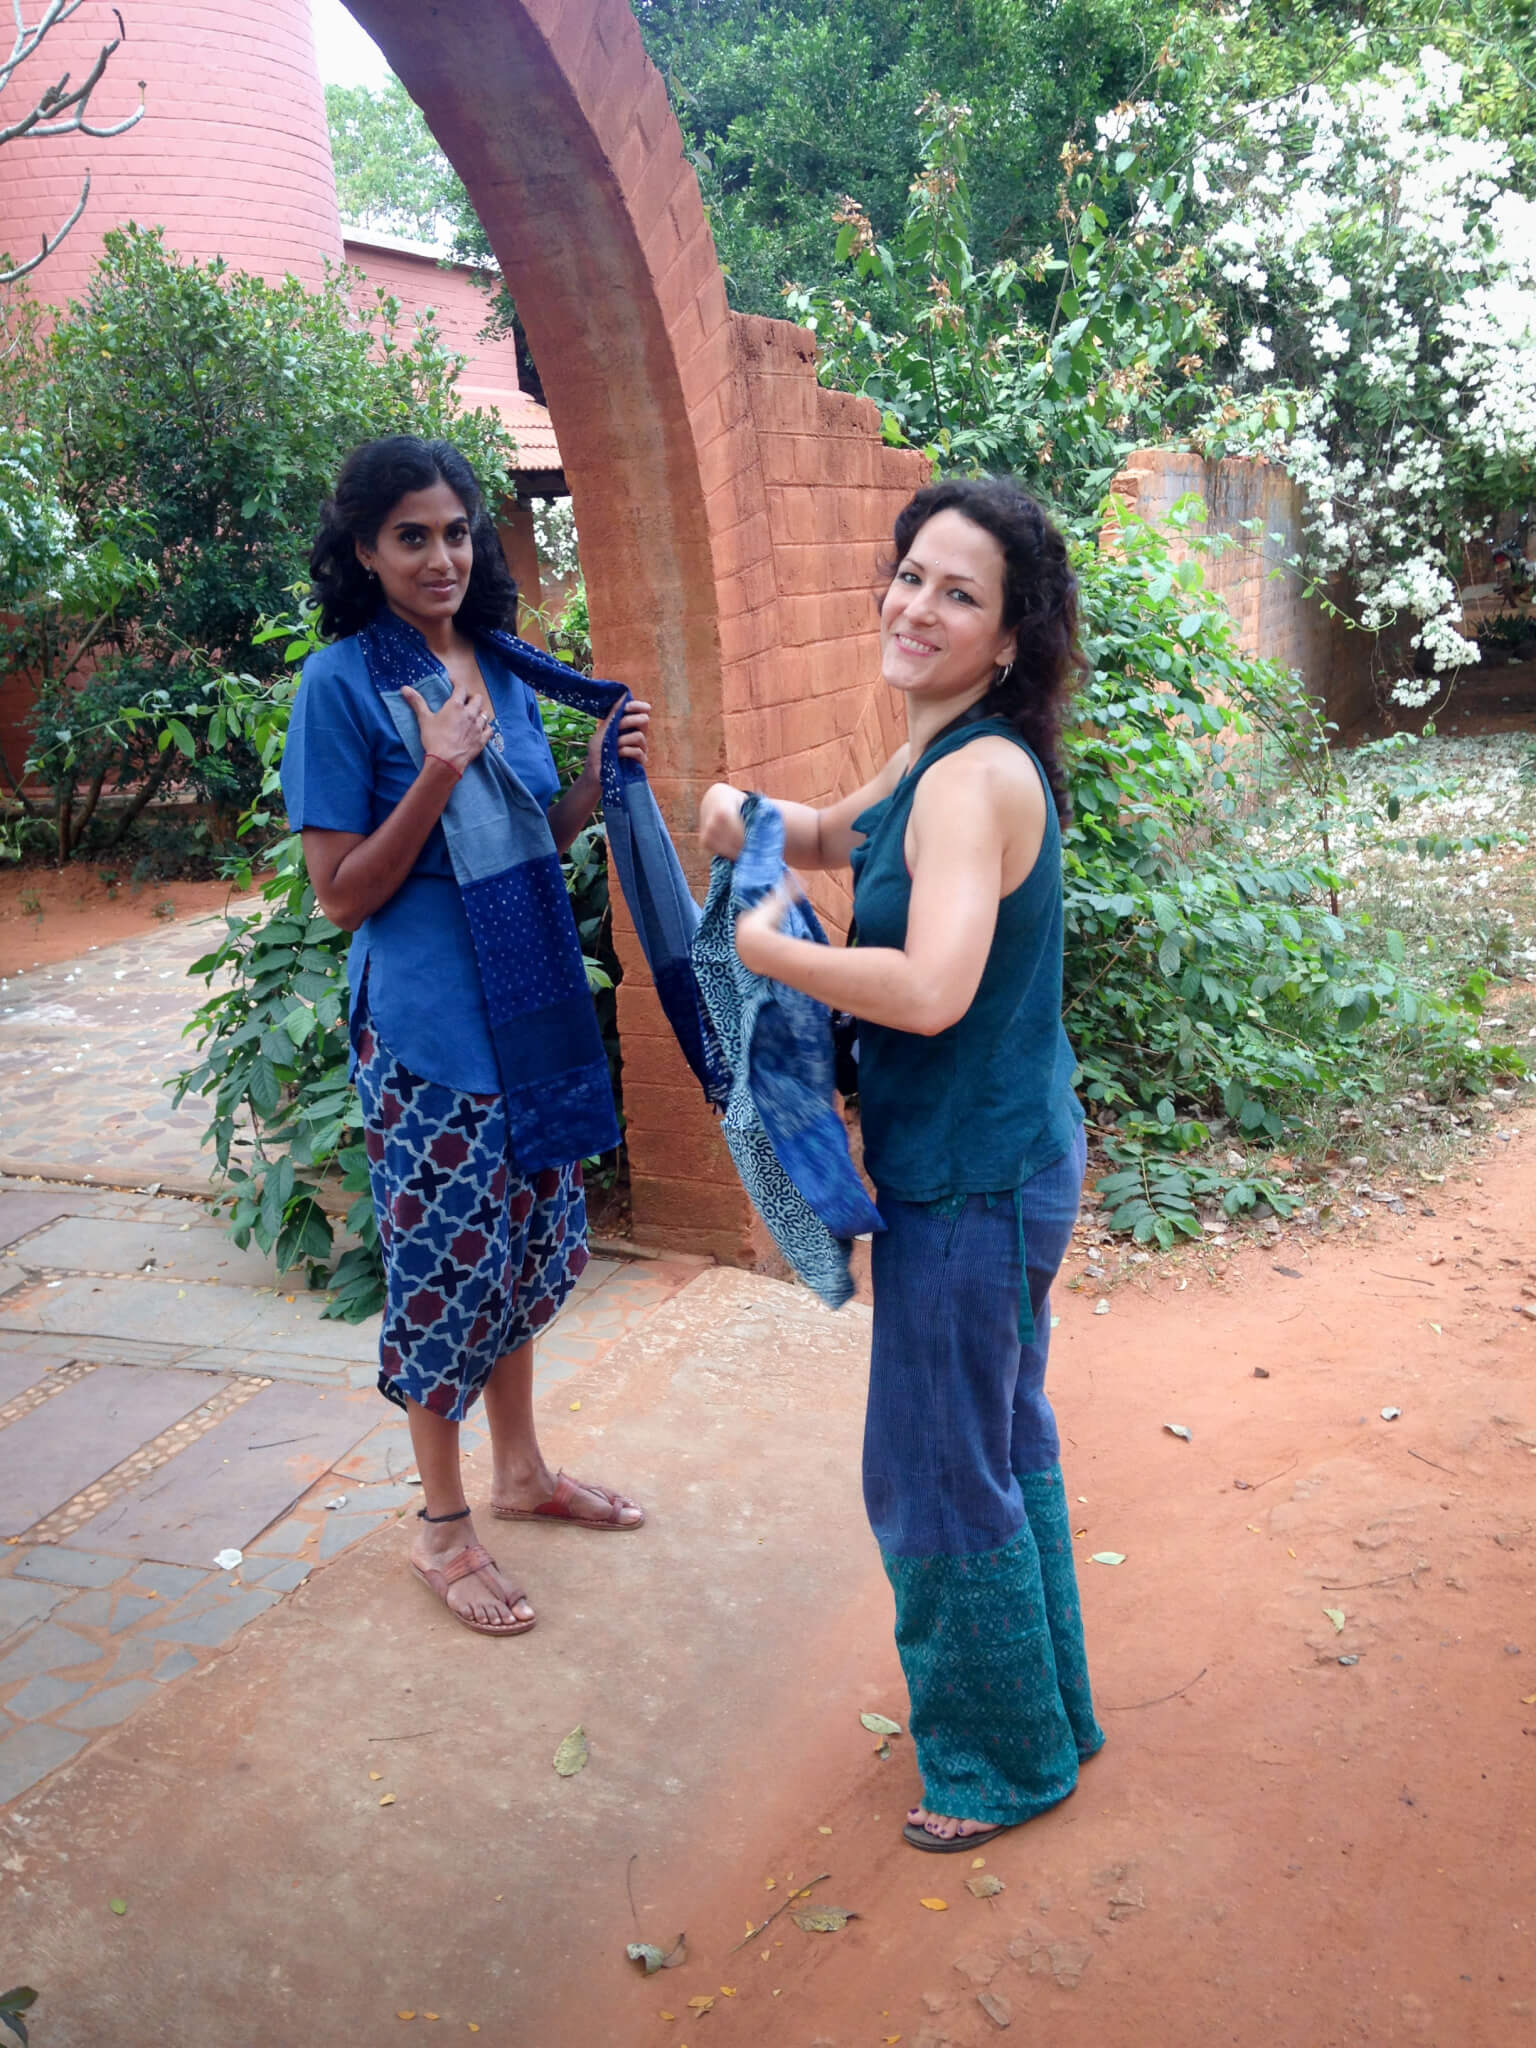 Melissa de valera at work at Takla Makan in Auroville